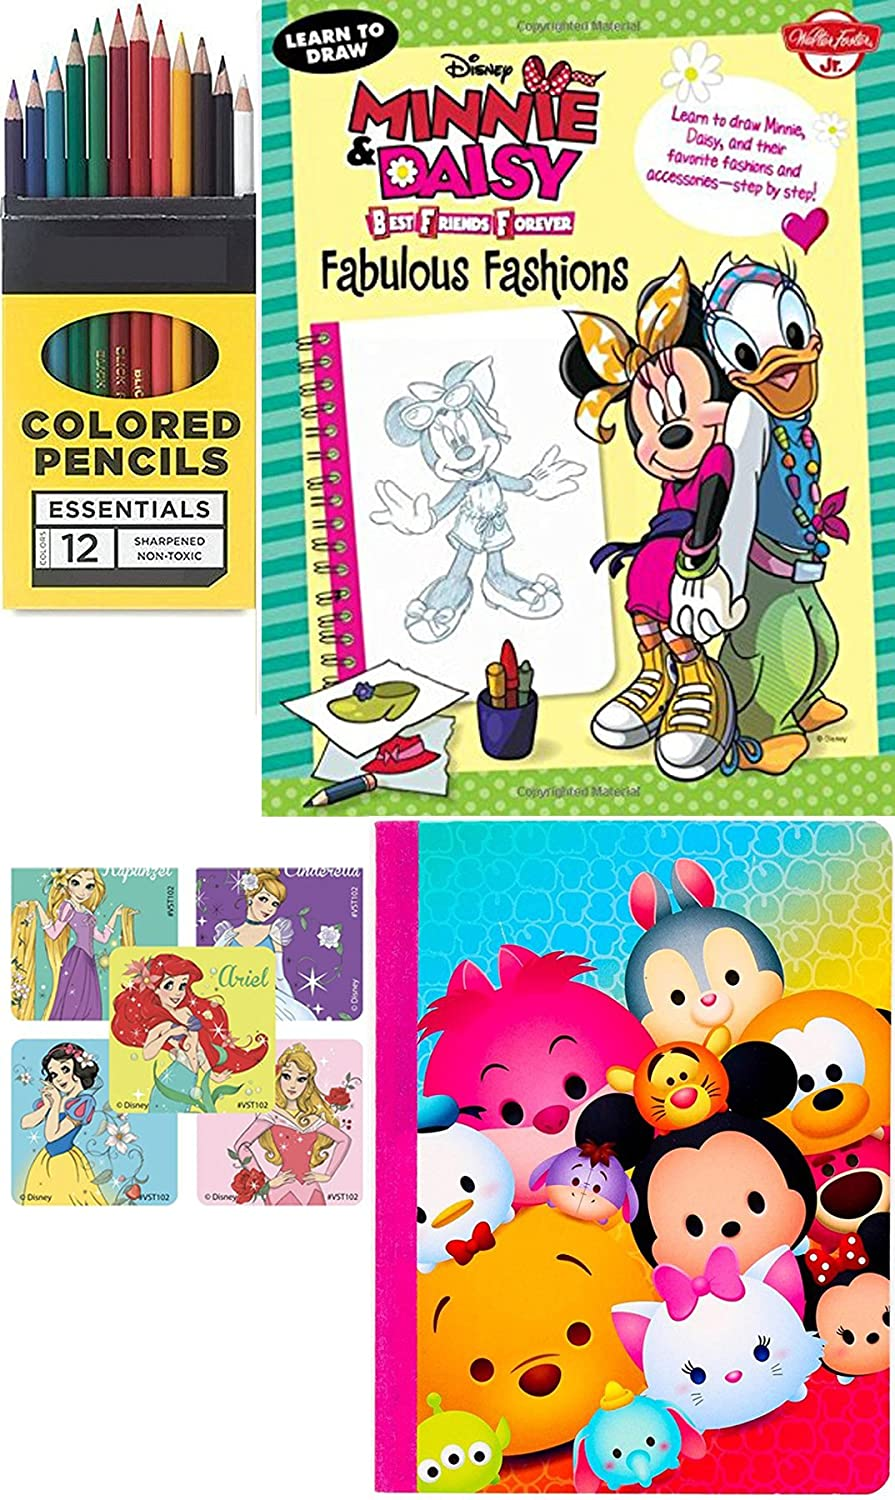 Colored Pencil Pack over 200 Images Princess characters /& Stickers WD AYB Disney Minnie /& Daisy Fabulous Fashions Art Drawing Book Set /& Tsum Tsum Notebook